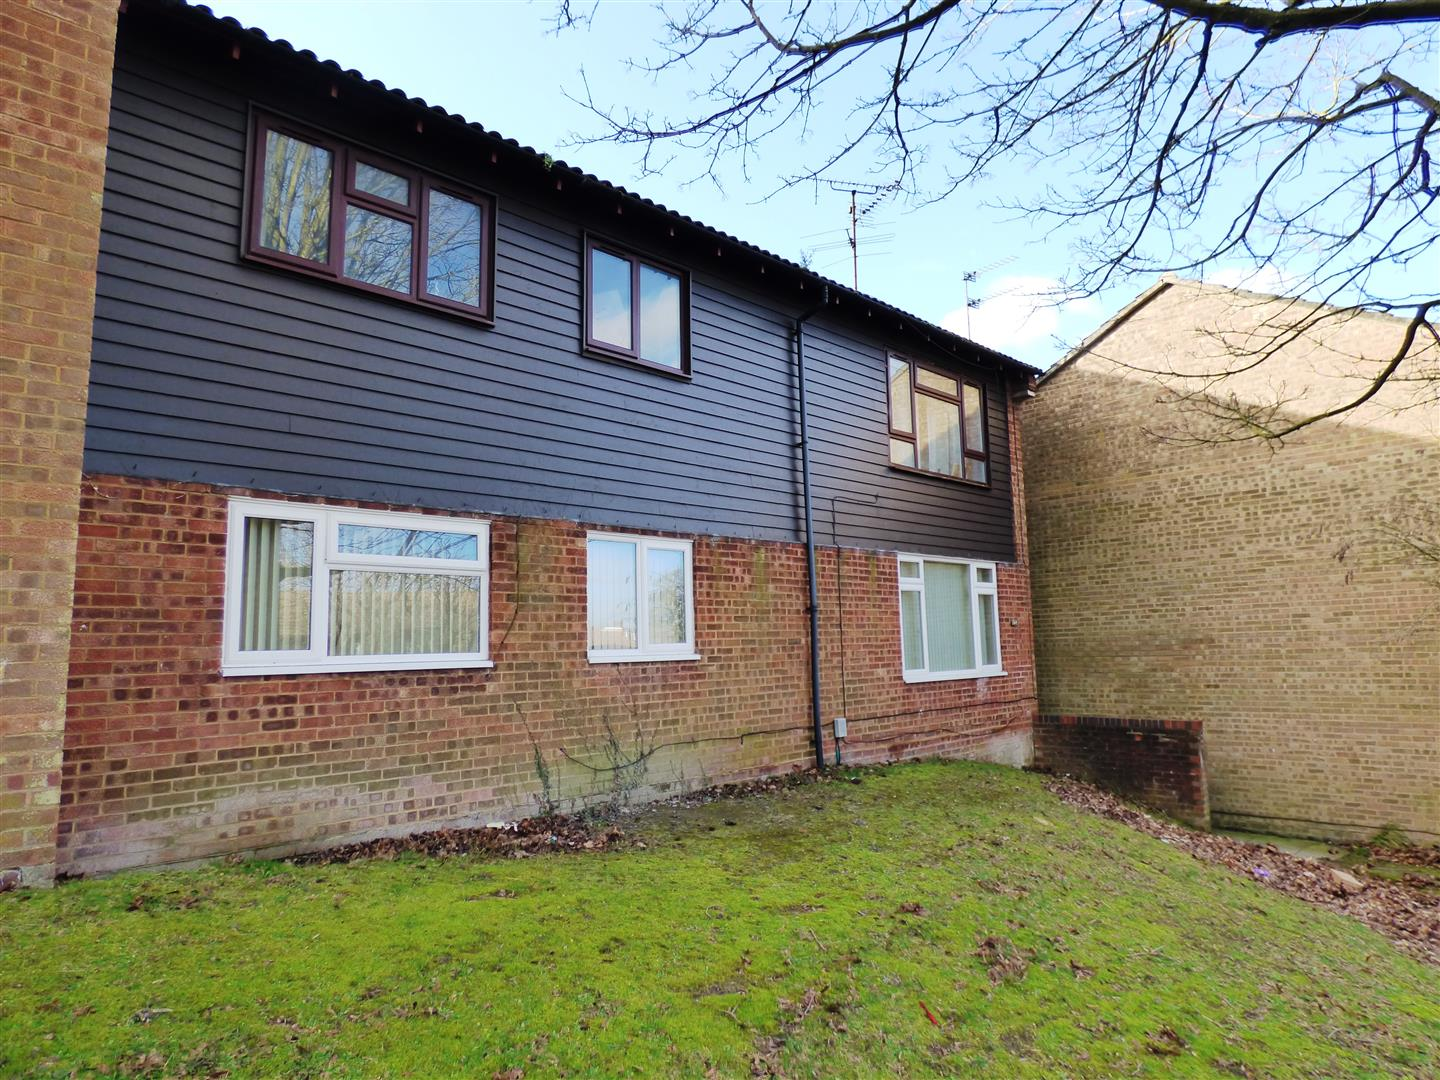 1 Bedroom Maisonette Flat for sale in Spoondell, Dunstable